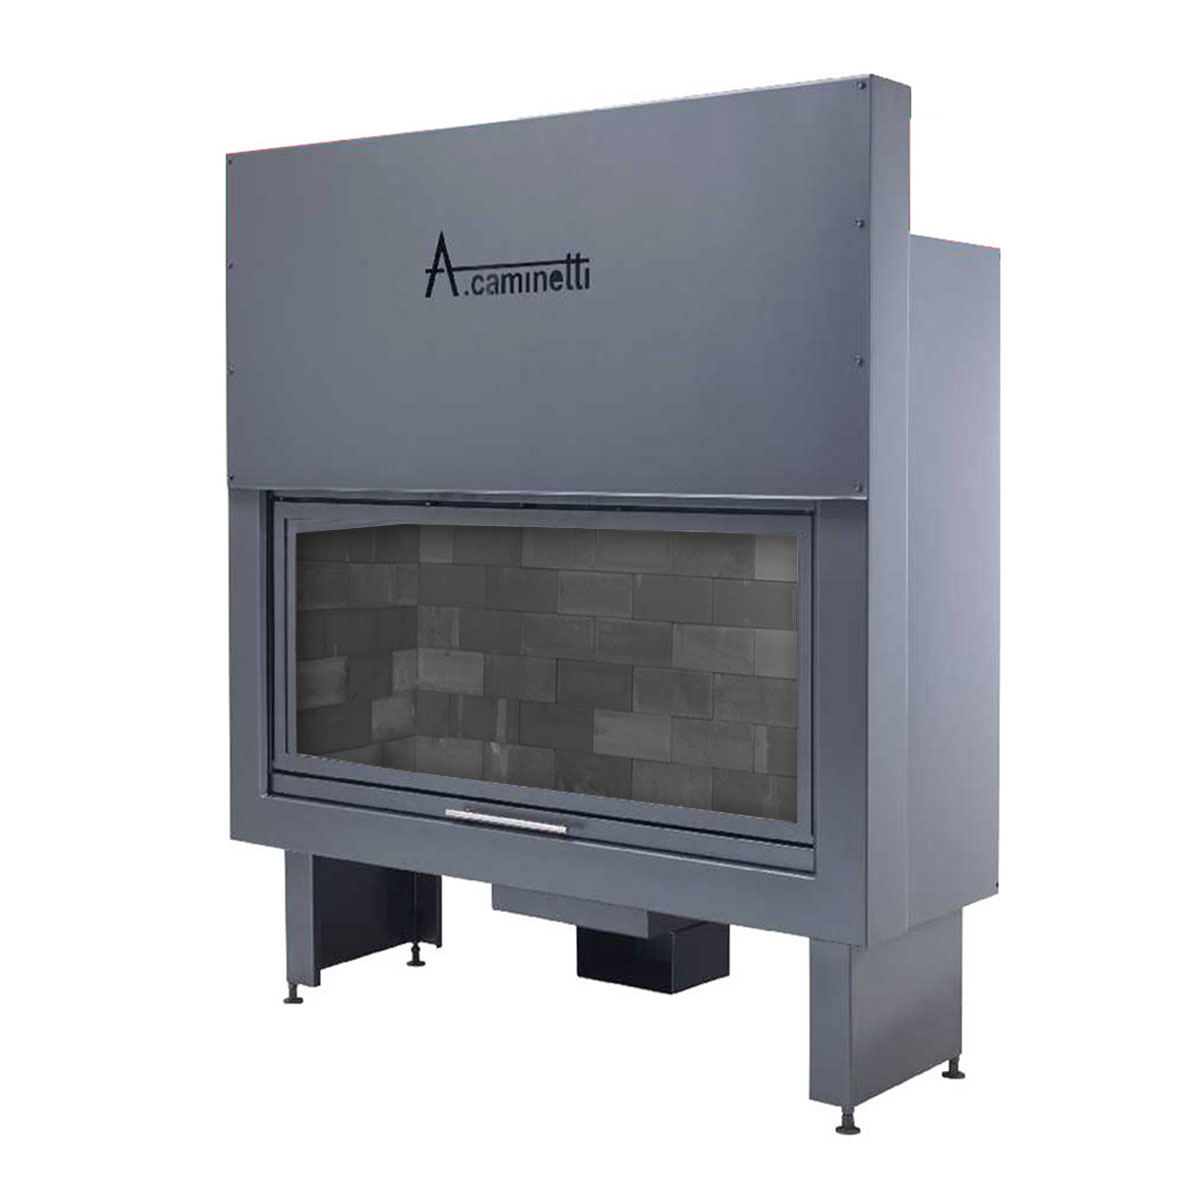 ACAMINETTI Wood Fireplace Horizon 140 with Black Bricks